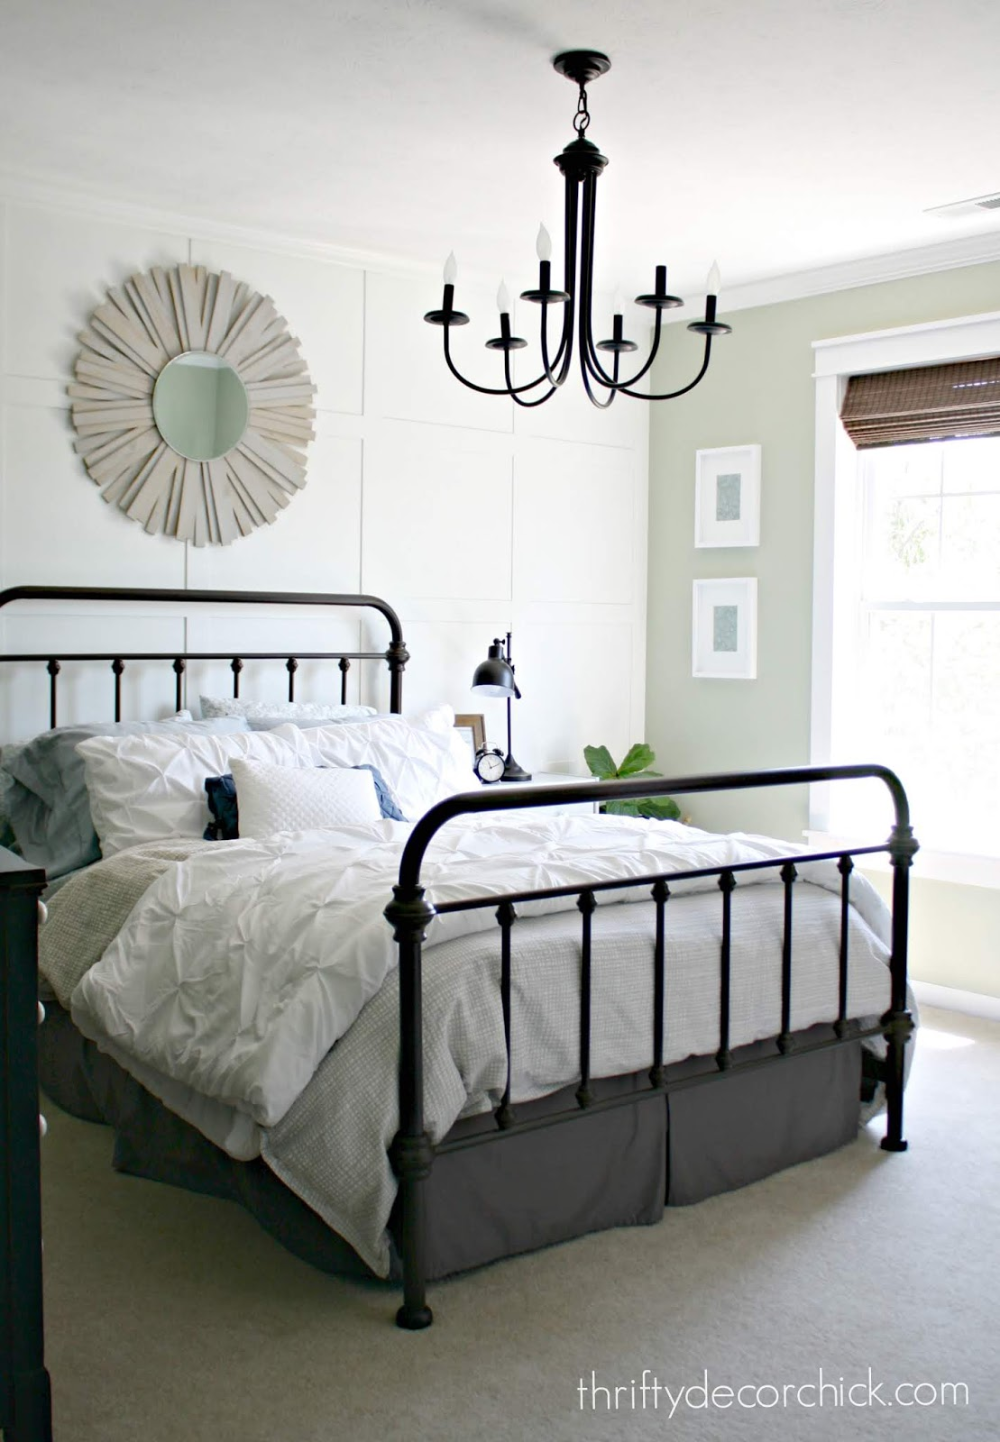 First look The guest room tour! in 2020 Light green